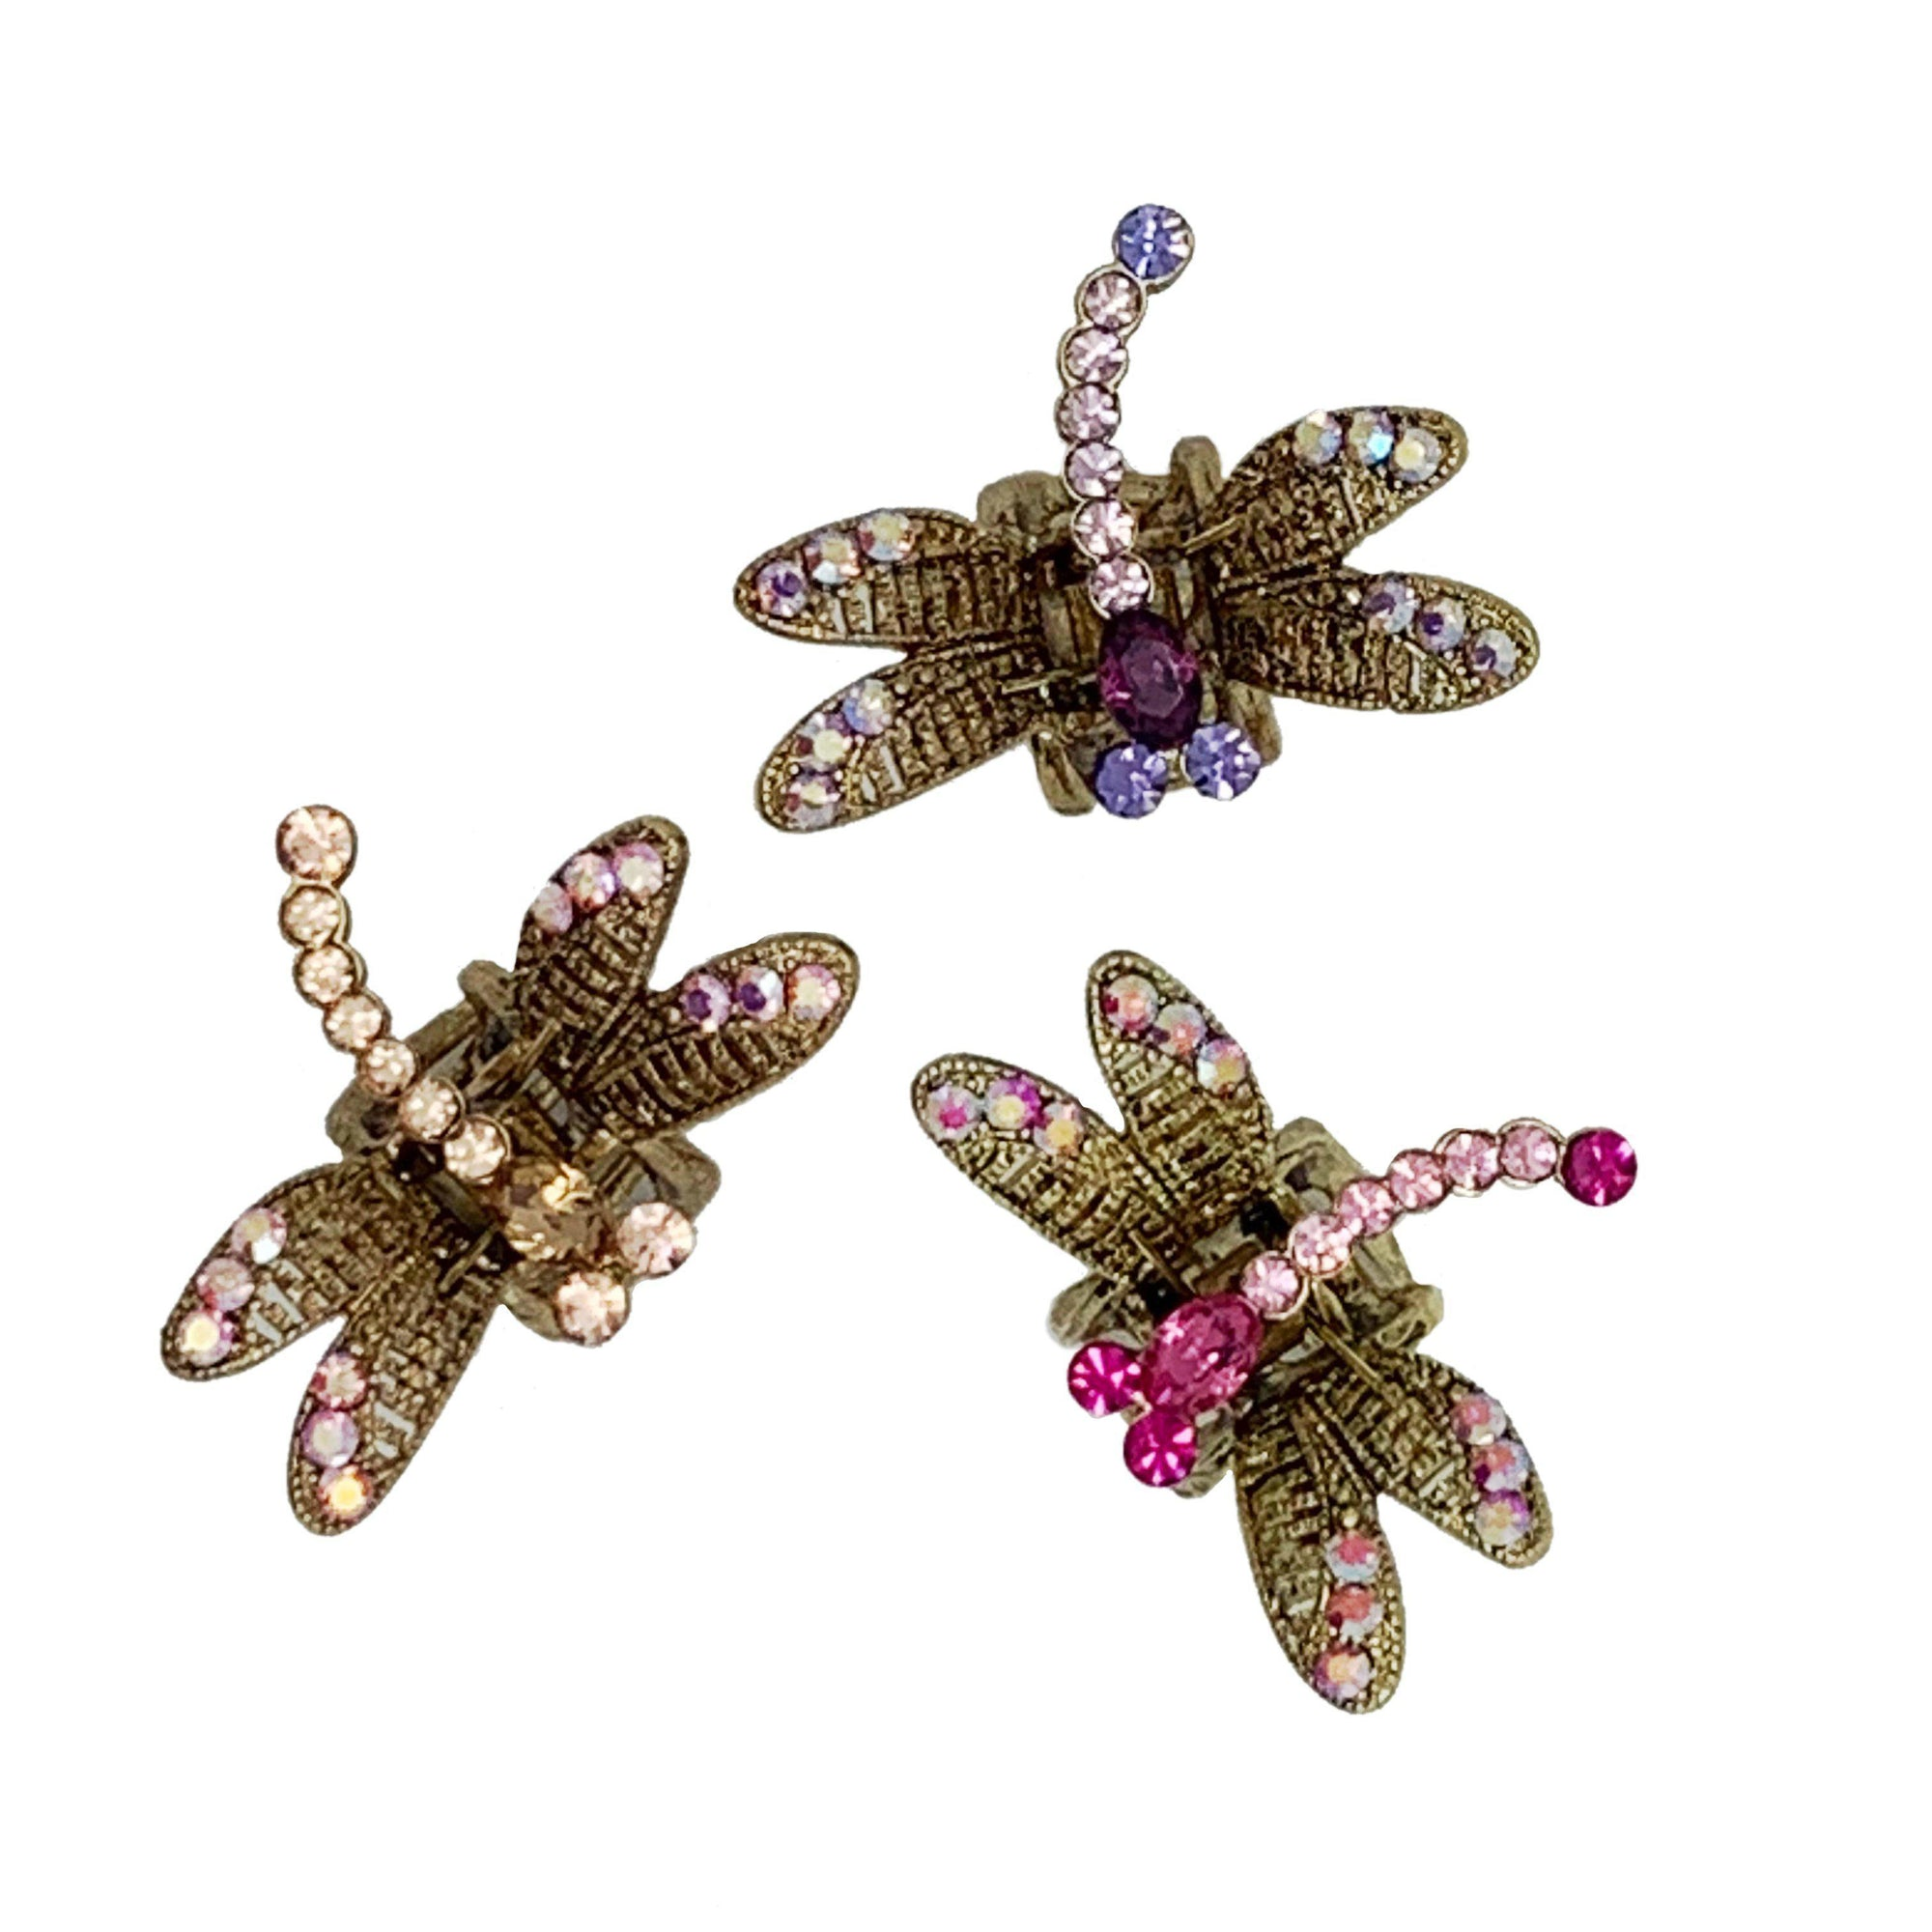 Mini Swarovski Crystal Dragonfly Hairclaw-Hair claws-Swarovski Crystal-Tegen Accessories